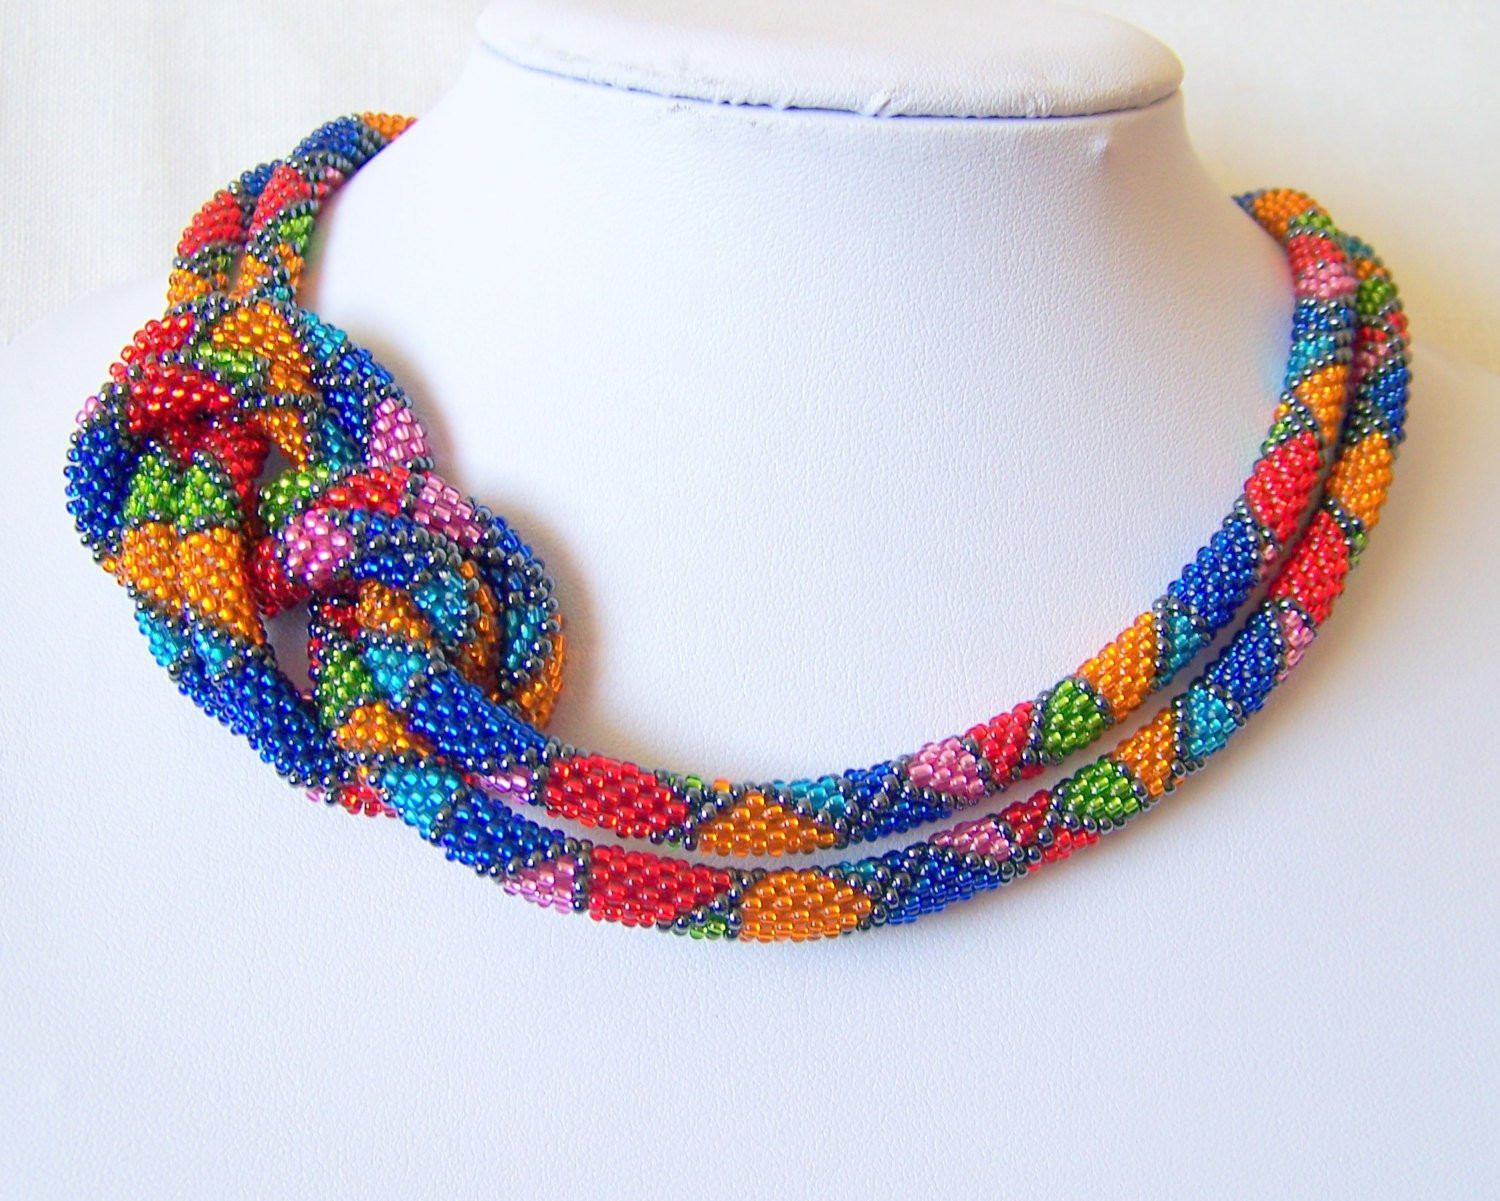 Crochet Beaded Necklace Fresh Long Beaded Crochet Rope Necklace Beadwork Seed Beads by Of Contemporary 43 Images Crochet Beaded Necklace